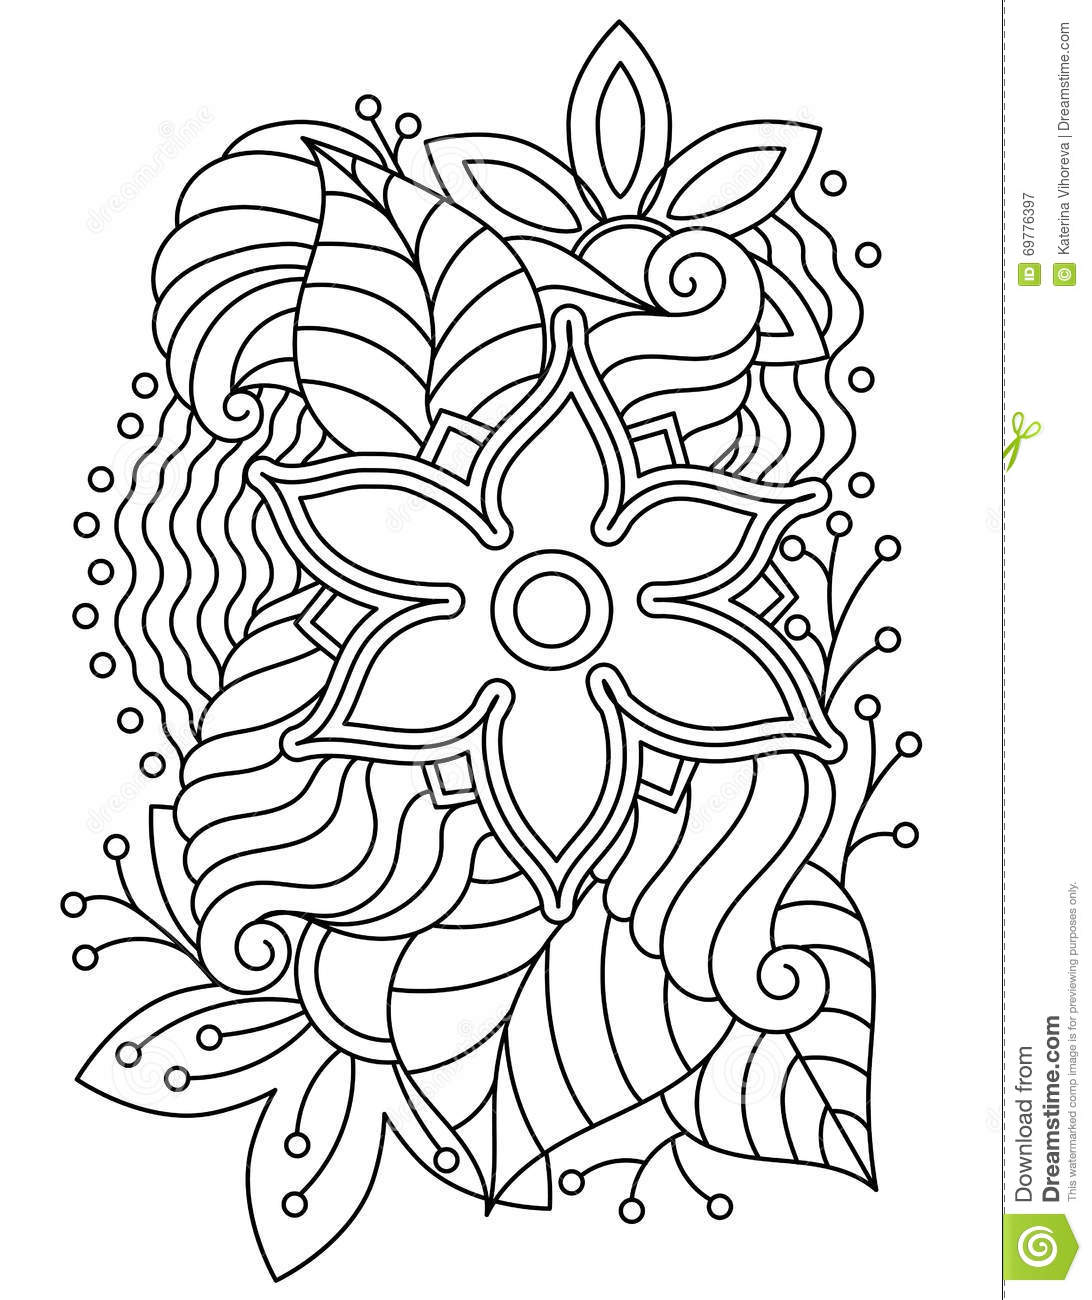 Coloring contest background coloring pages for Background coloring pages